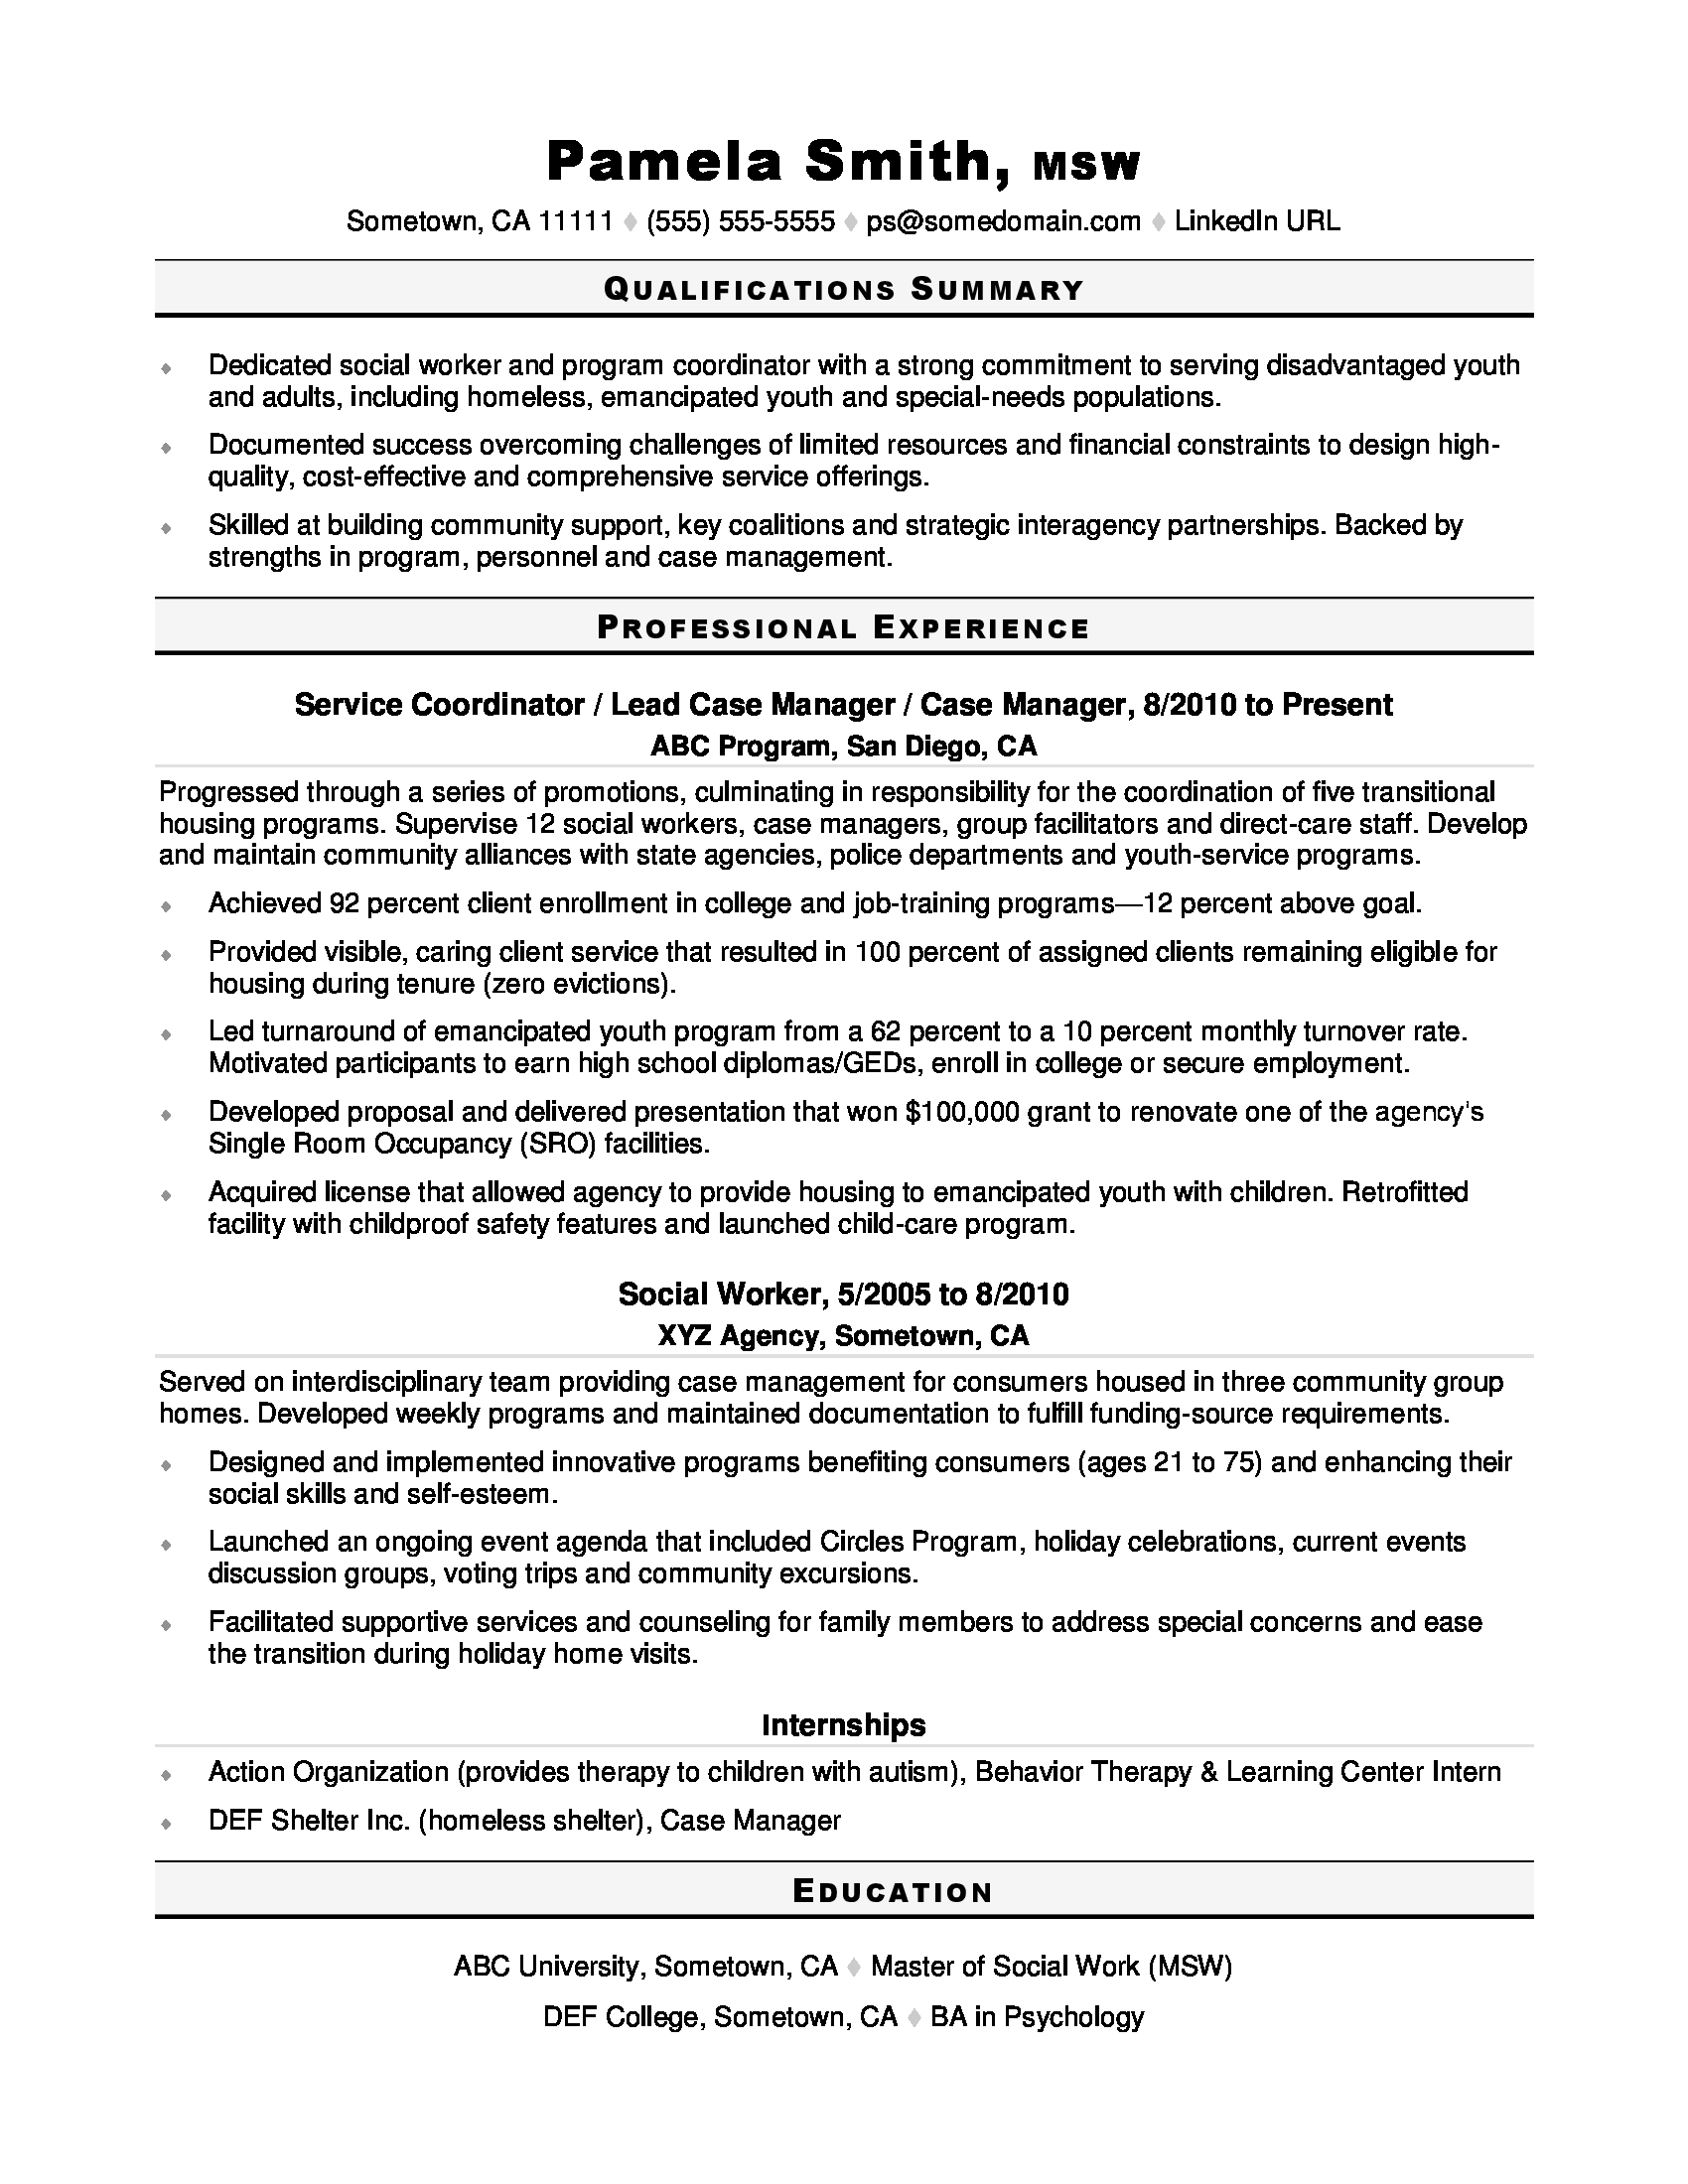 resumes and cover letters for social workers Social services resume, templates and cover letters plus an indeed job search engine, 3 social services worker resume.